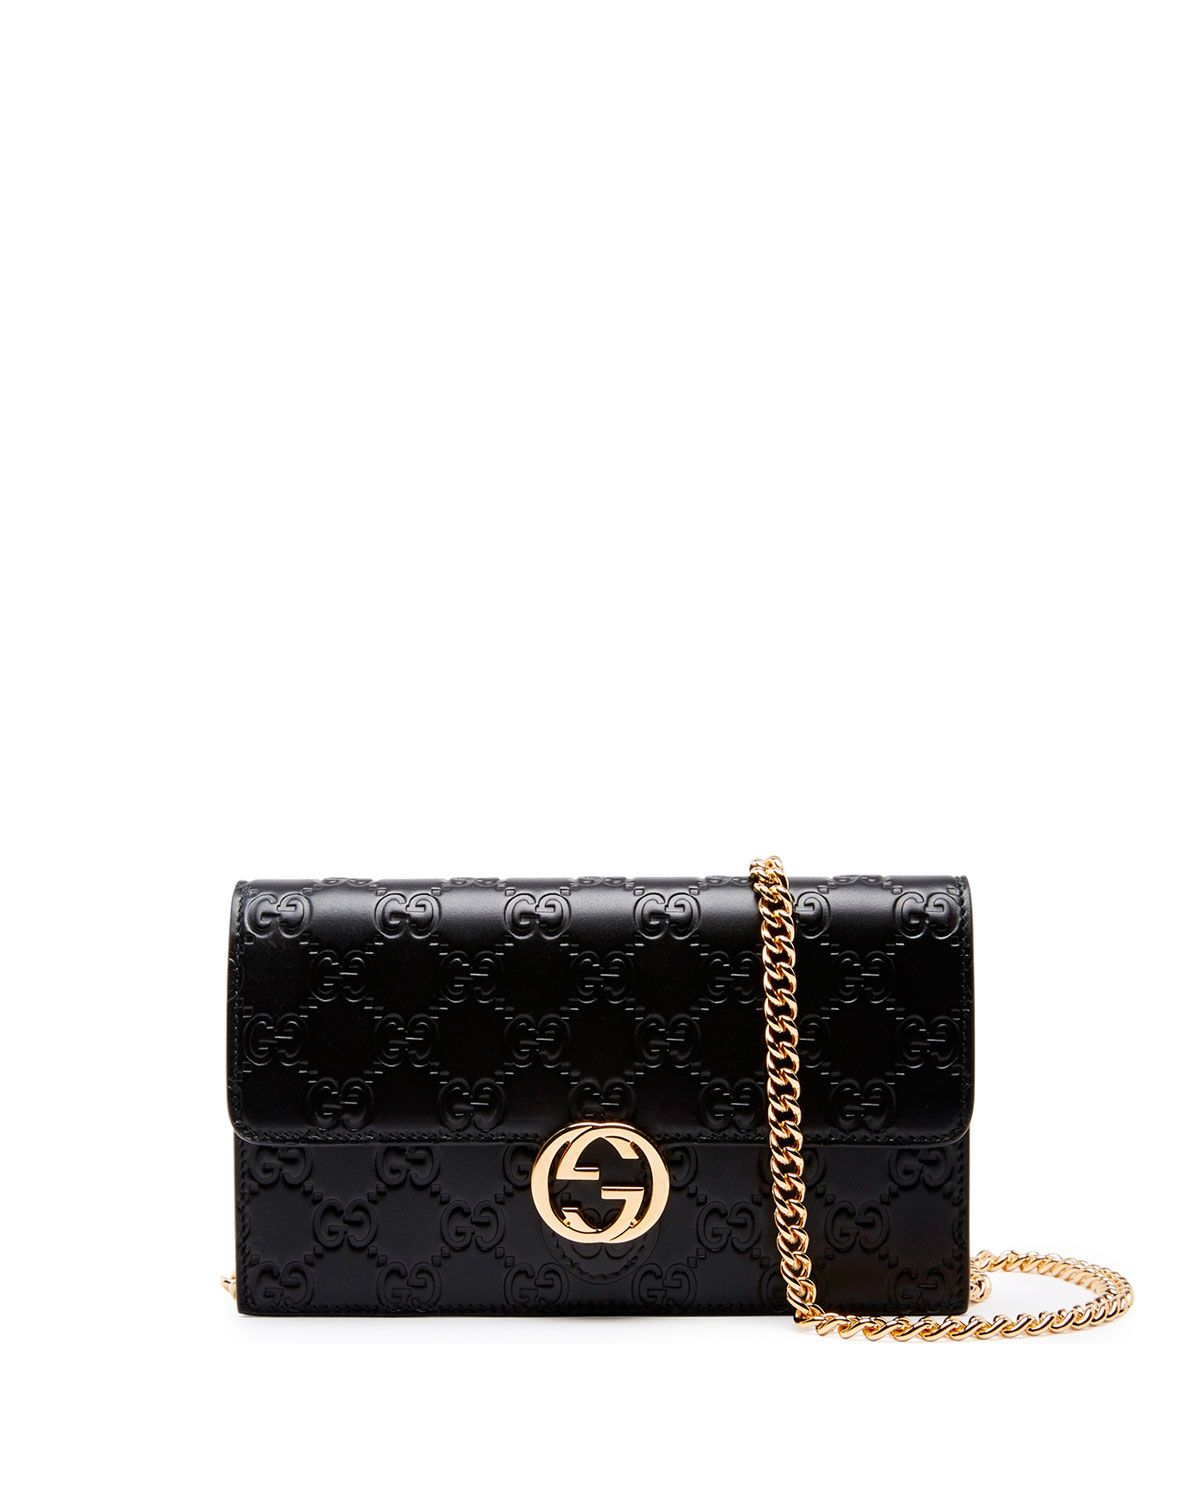 2b32b7b4eb6d Gucci icon wallet in embossed GG leather. Chain shoulder strap, 24